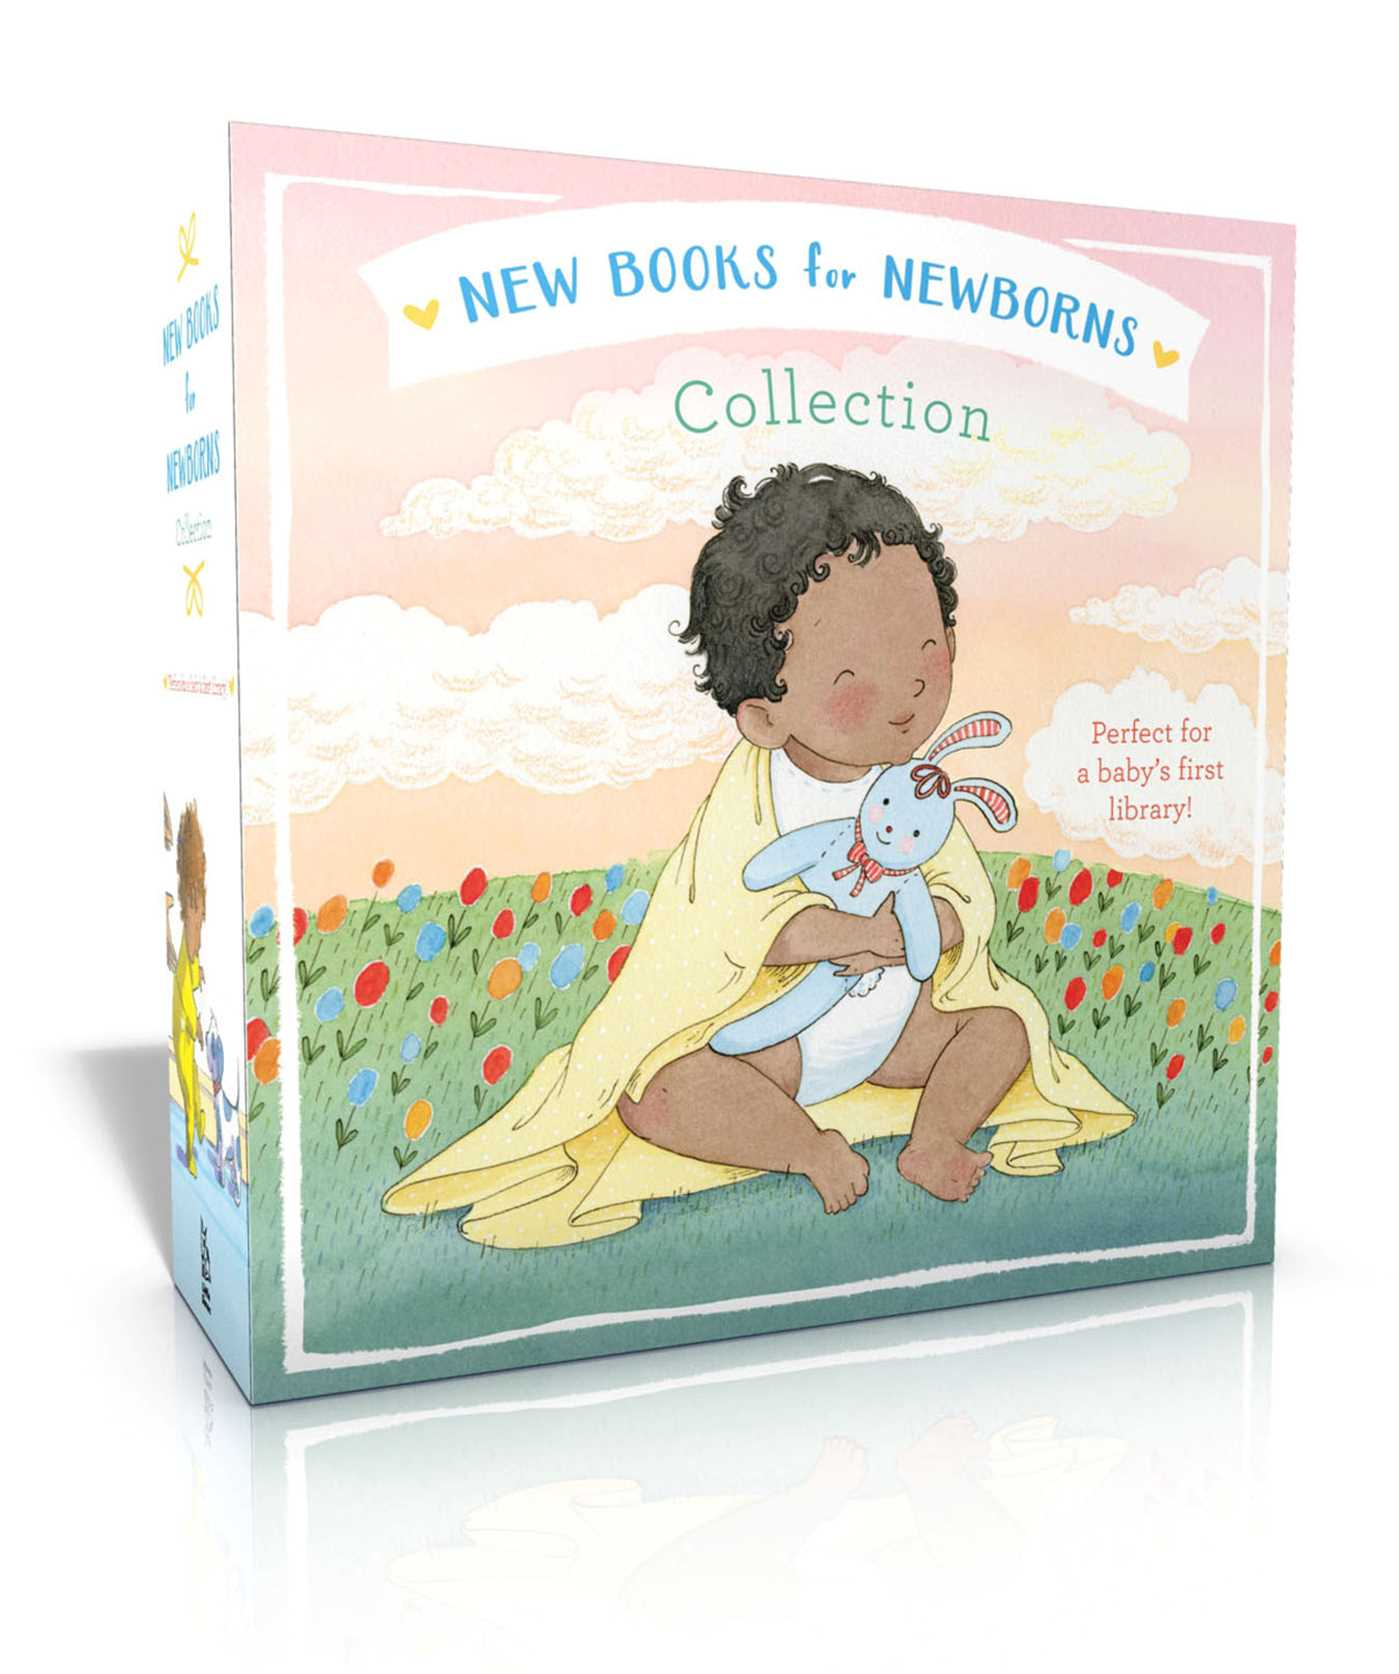 New books for newborns collection 9781534410152 hr